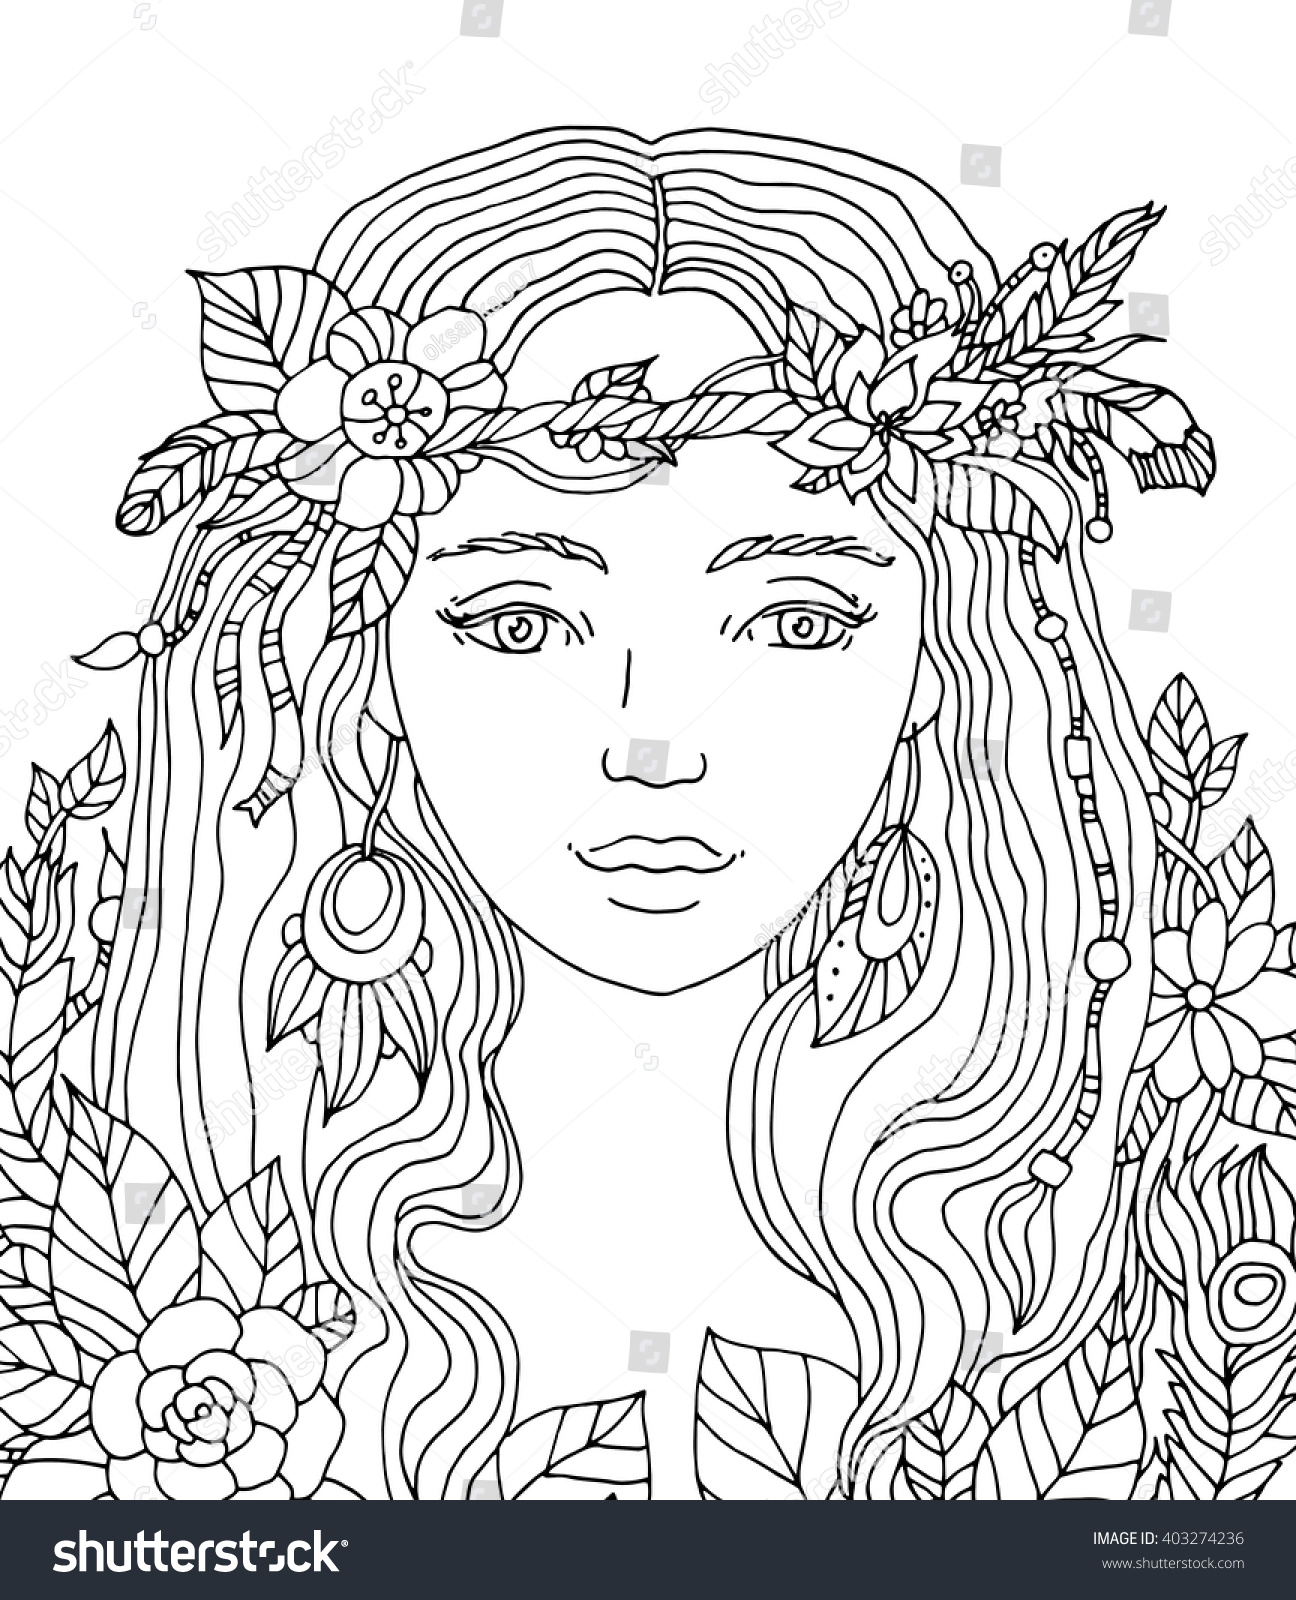 Pretty girl coloring pages - Pretty Elegant Girl Floral Wreath Coloring Book Page For Adult Vector Artwork